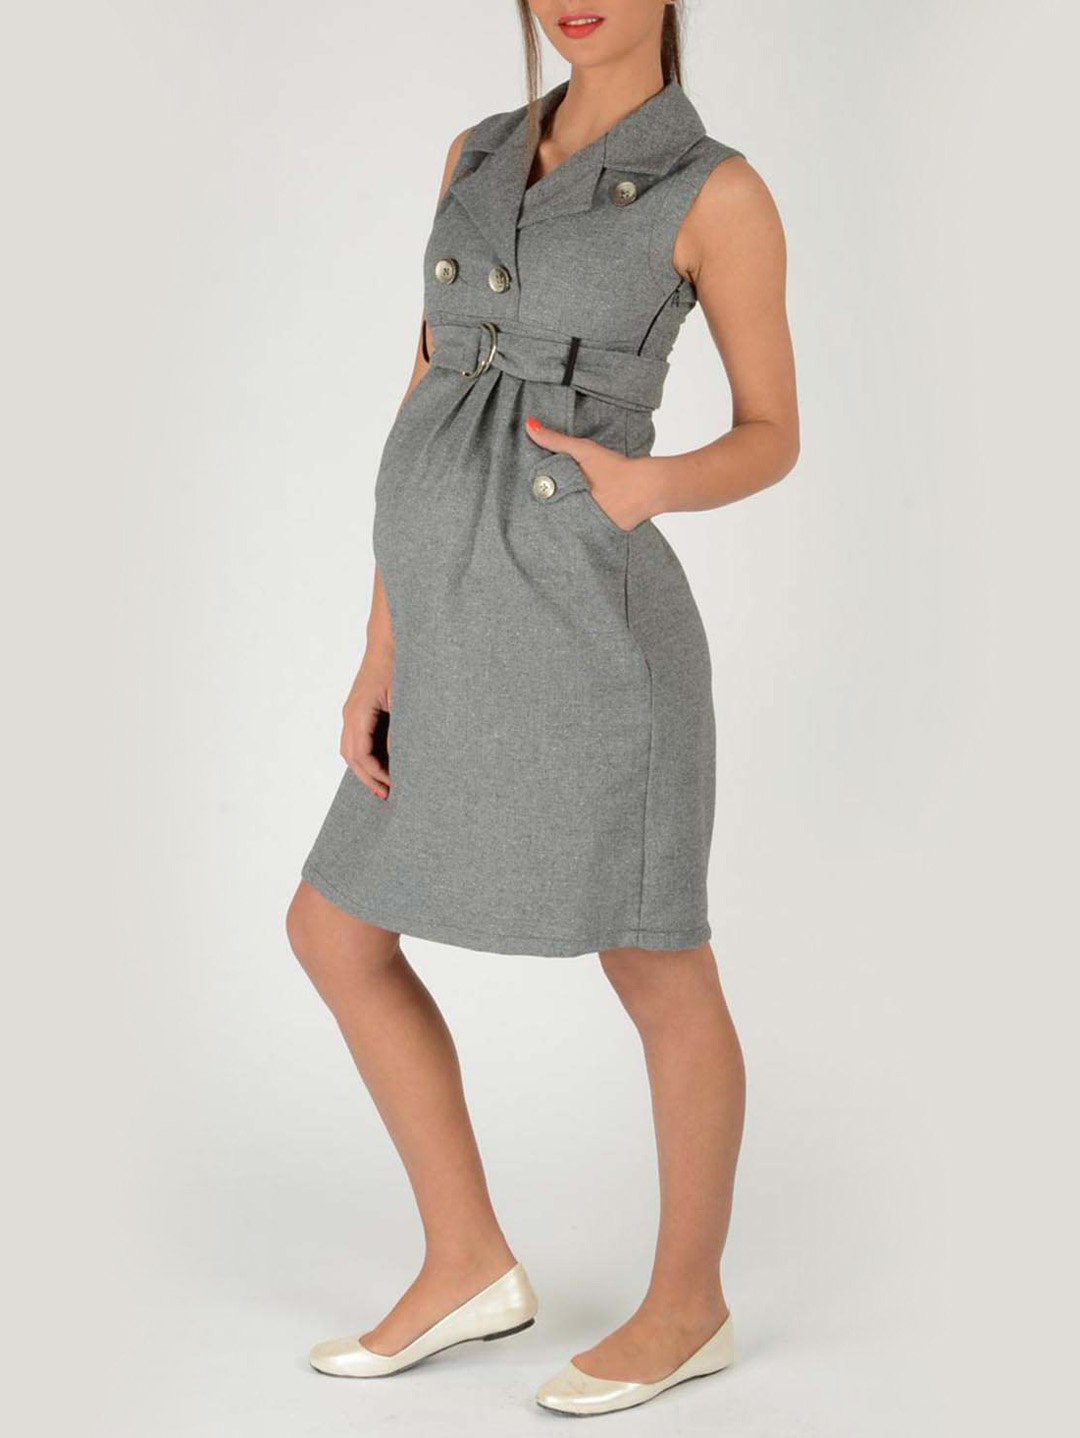 Maternity wear clothes collection 2013 maternity tops tunics dresses